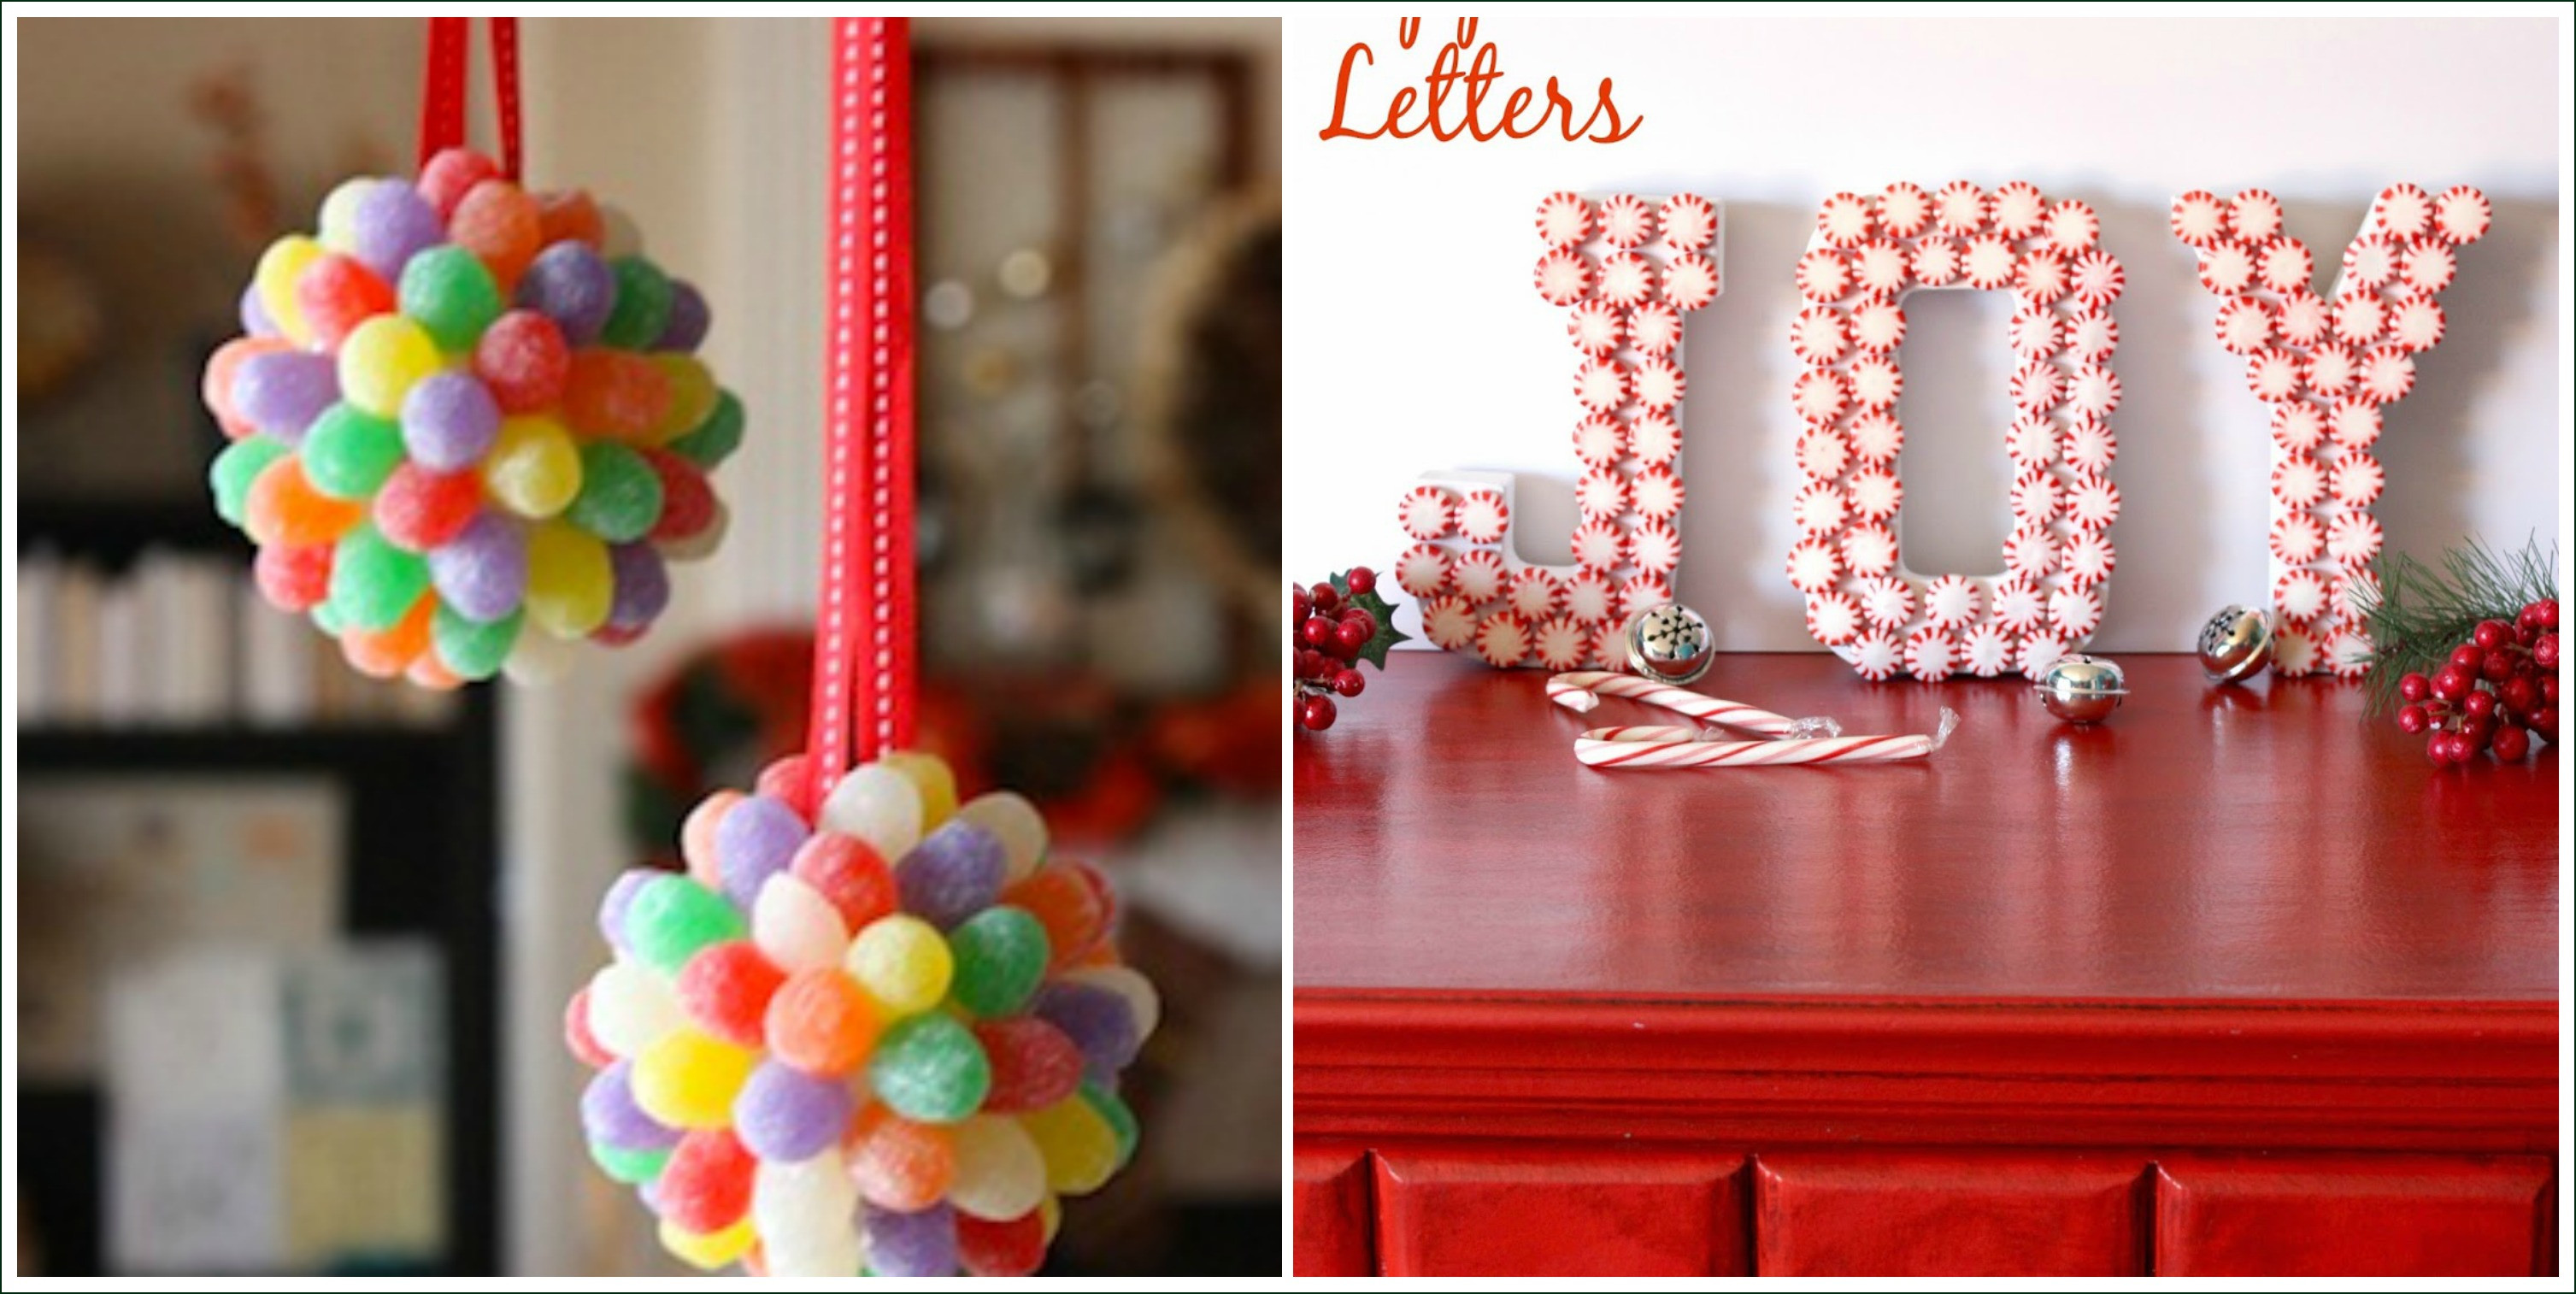 Christmas Candy Decorations  14 Candy Christmas Decorations to Sweeten Your Home